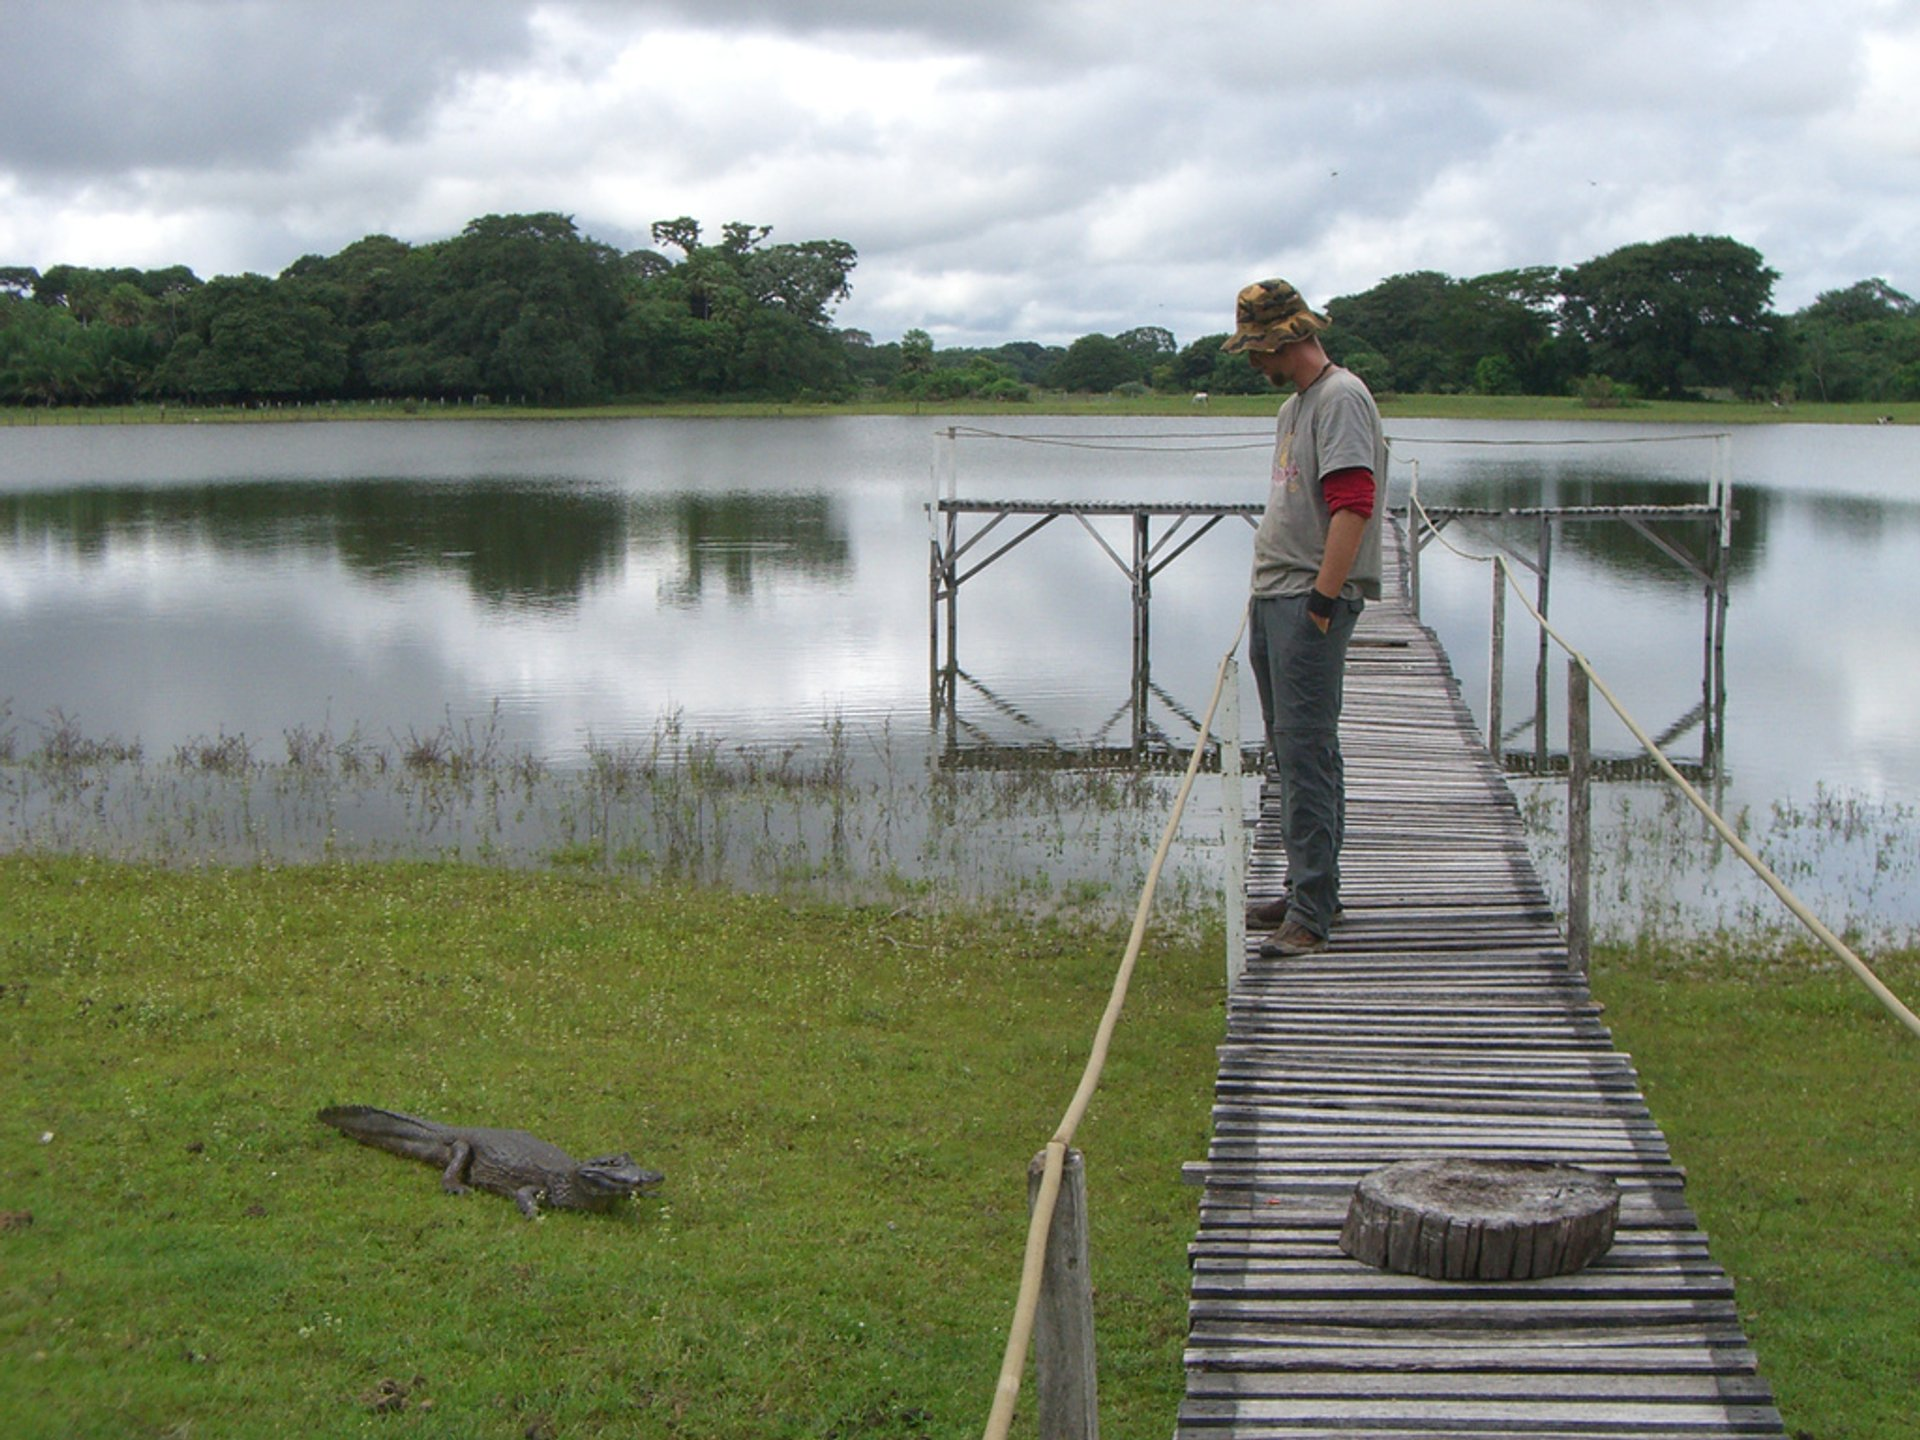 Alligator encounter in Pantanal 2019